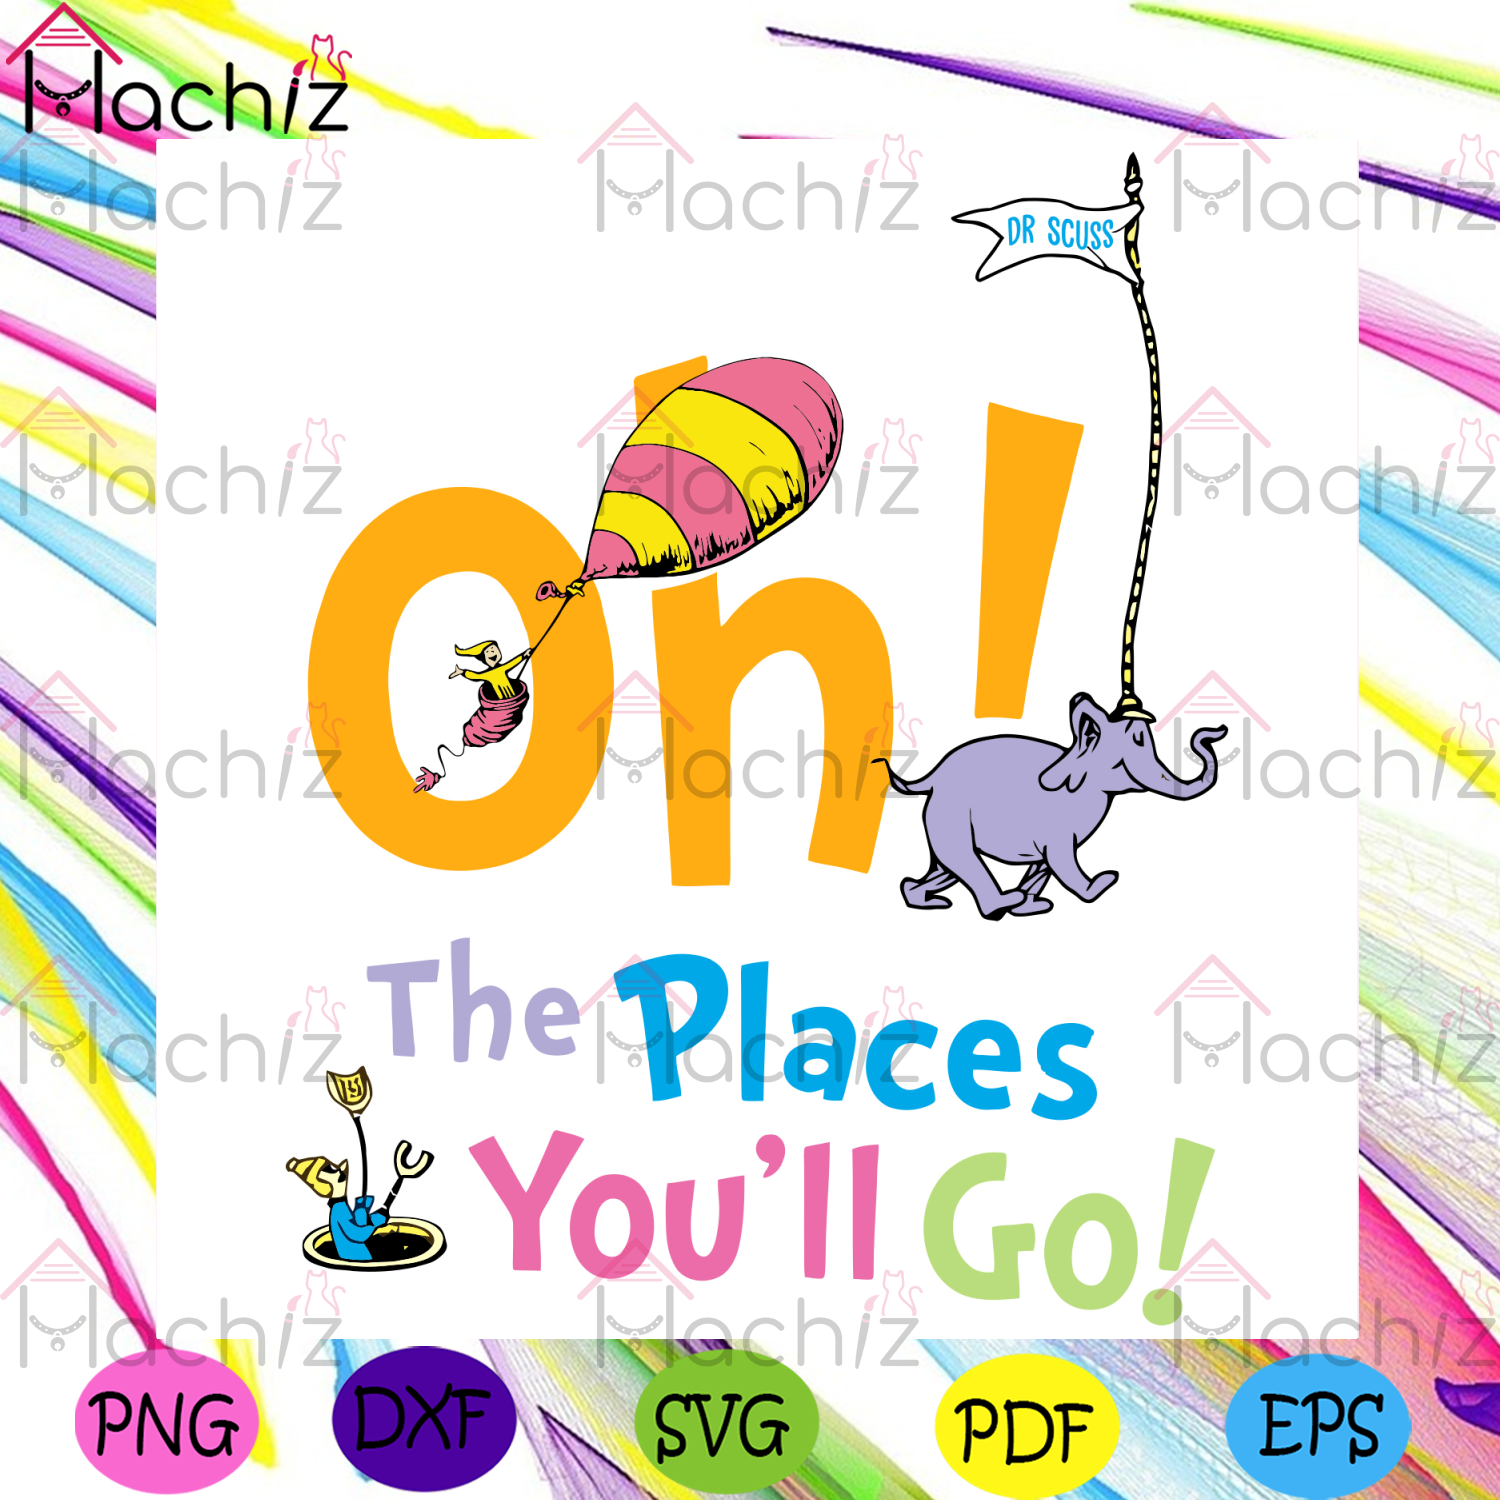 Oh The Places You Will Go Svg, Dr Seuss Svg, Dr Seuss Characters Svg, Dr Seuss Lovers Svg, Dr Seuss Fans Svg, Dr Seuss Gifts Svg, Dr Seuss Bundle Svg, Catinthehat Svg, Lorax Svg, Funny Svg, Funny Dr Seuss Svg, Funny Svg, Grinch Svg